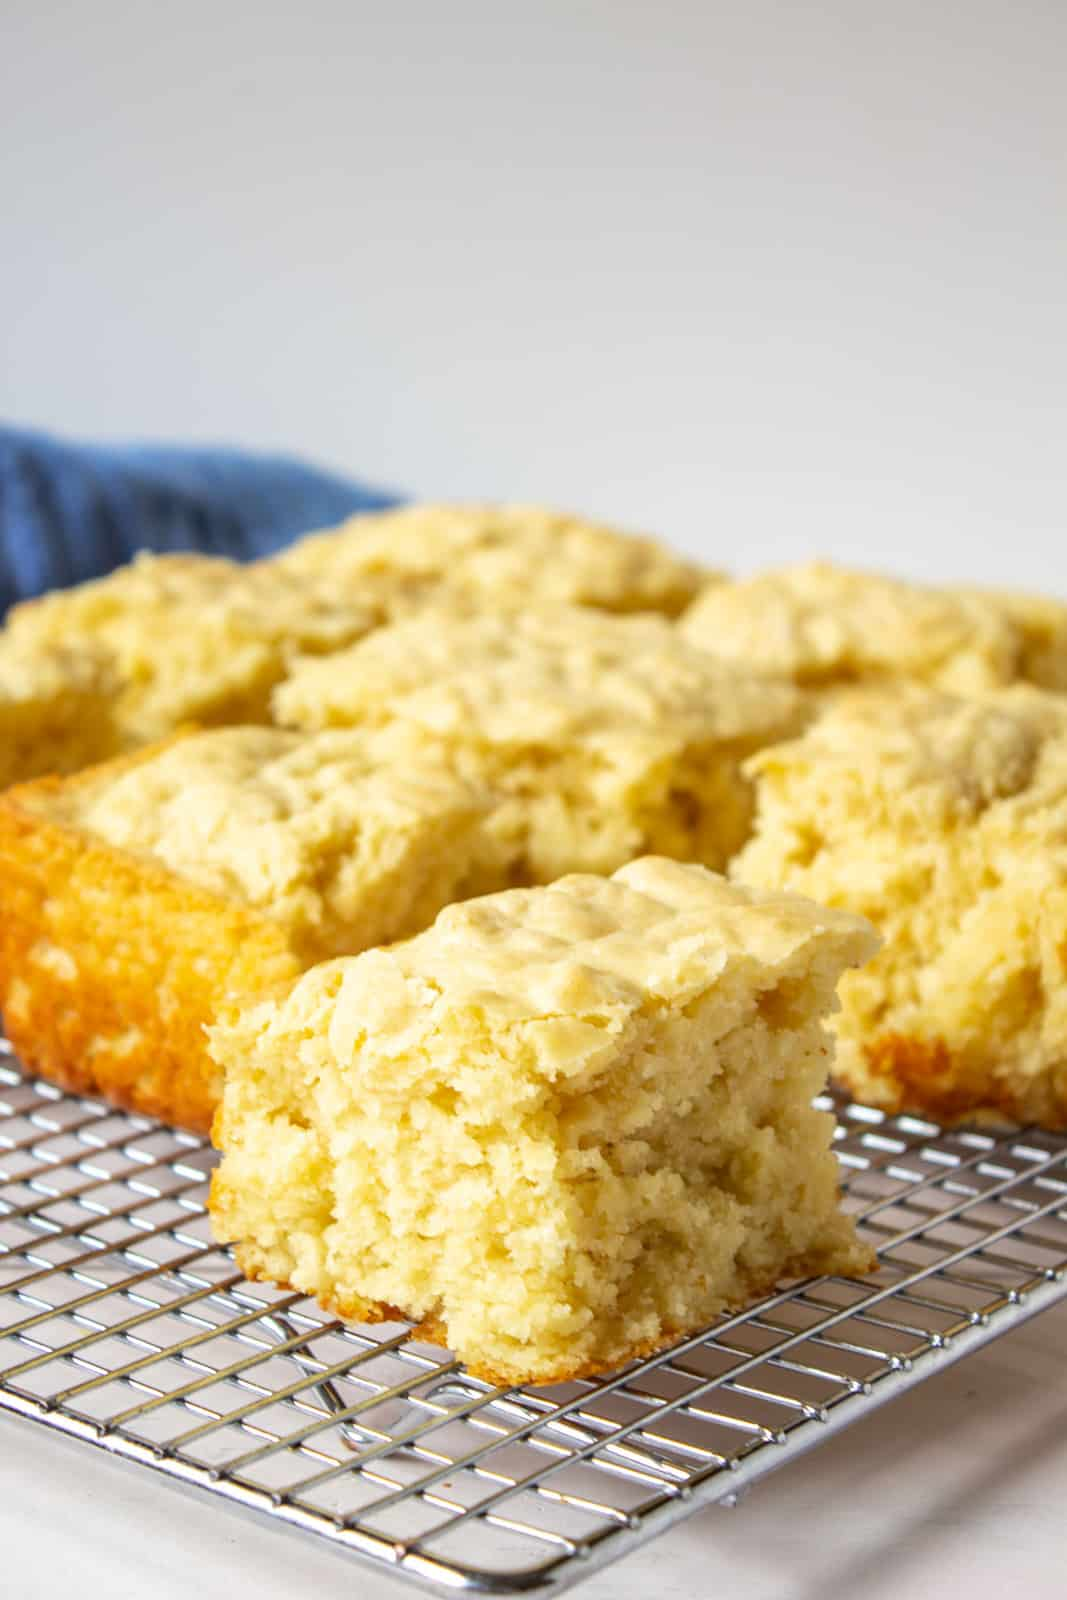 Buttermilk pan biscuits cut into squares on a wire baking rack.